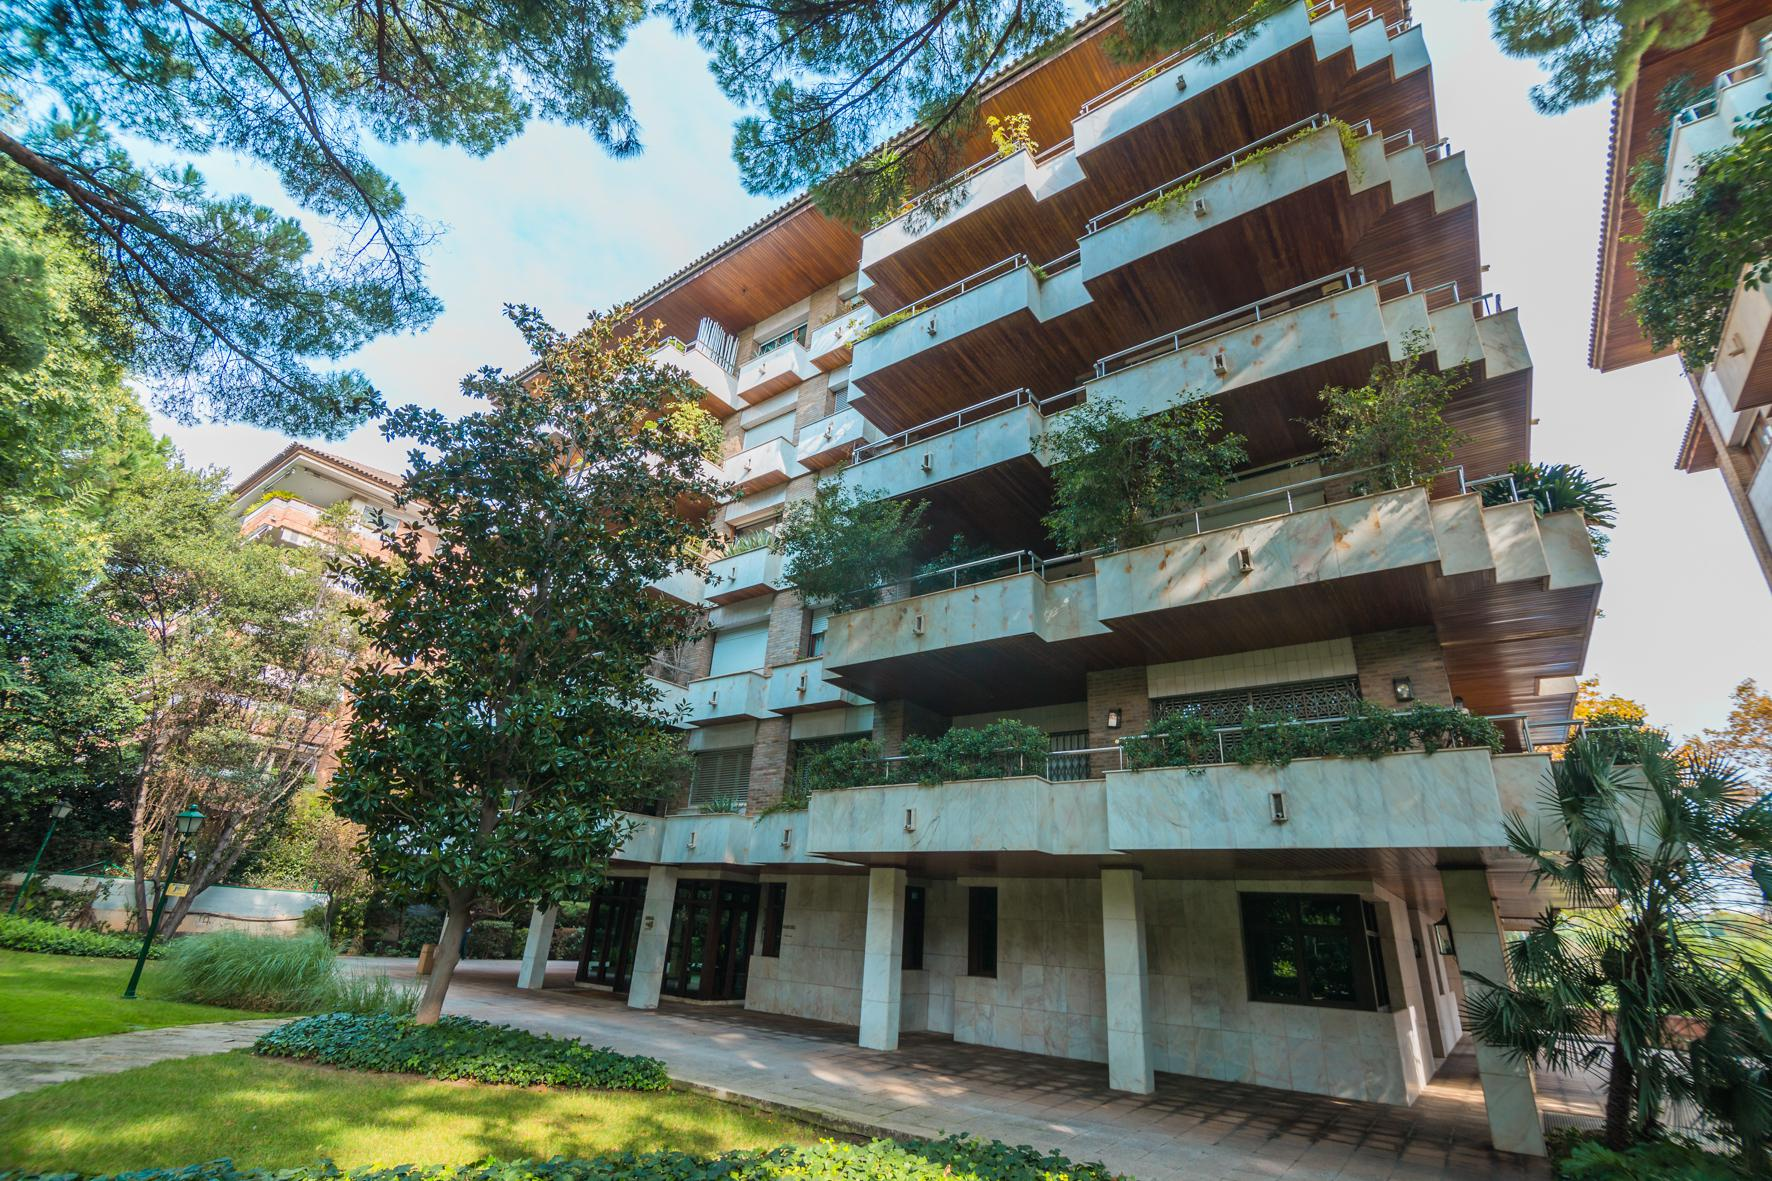 244103 Penthouse for sale in Les Corts, Pedralbes 28